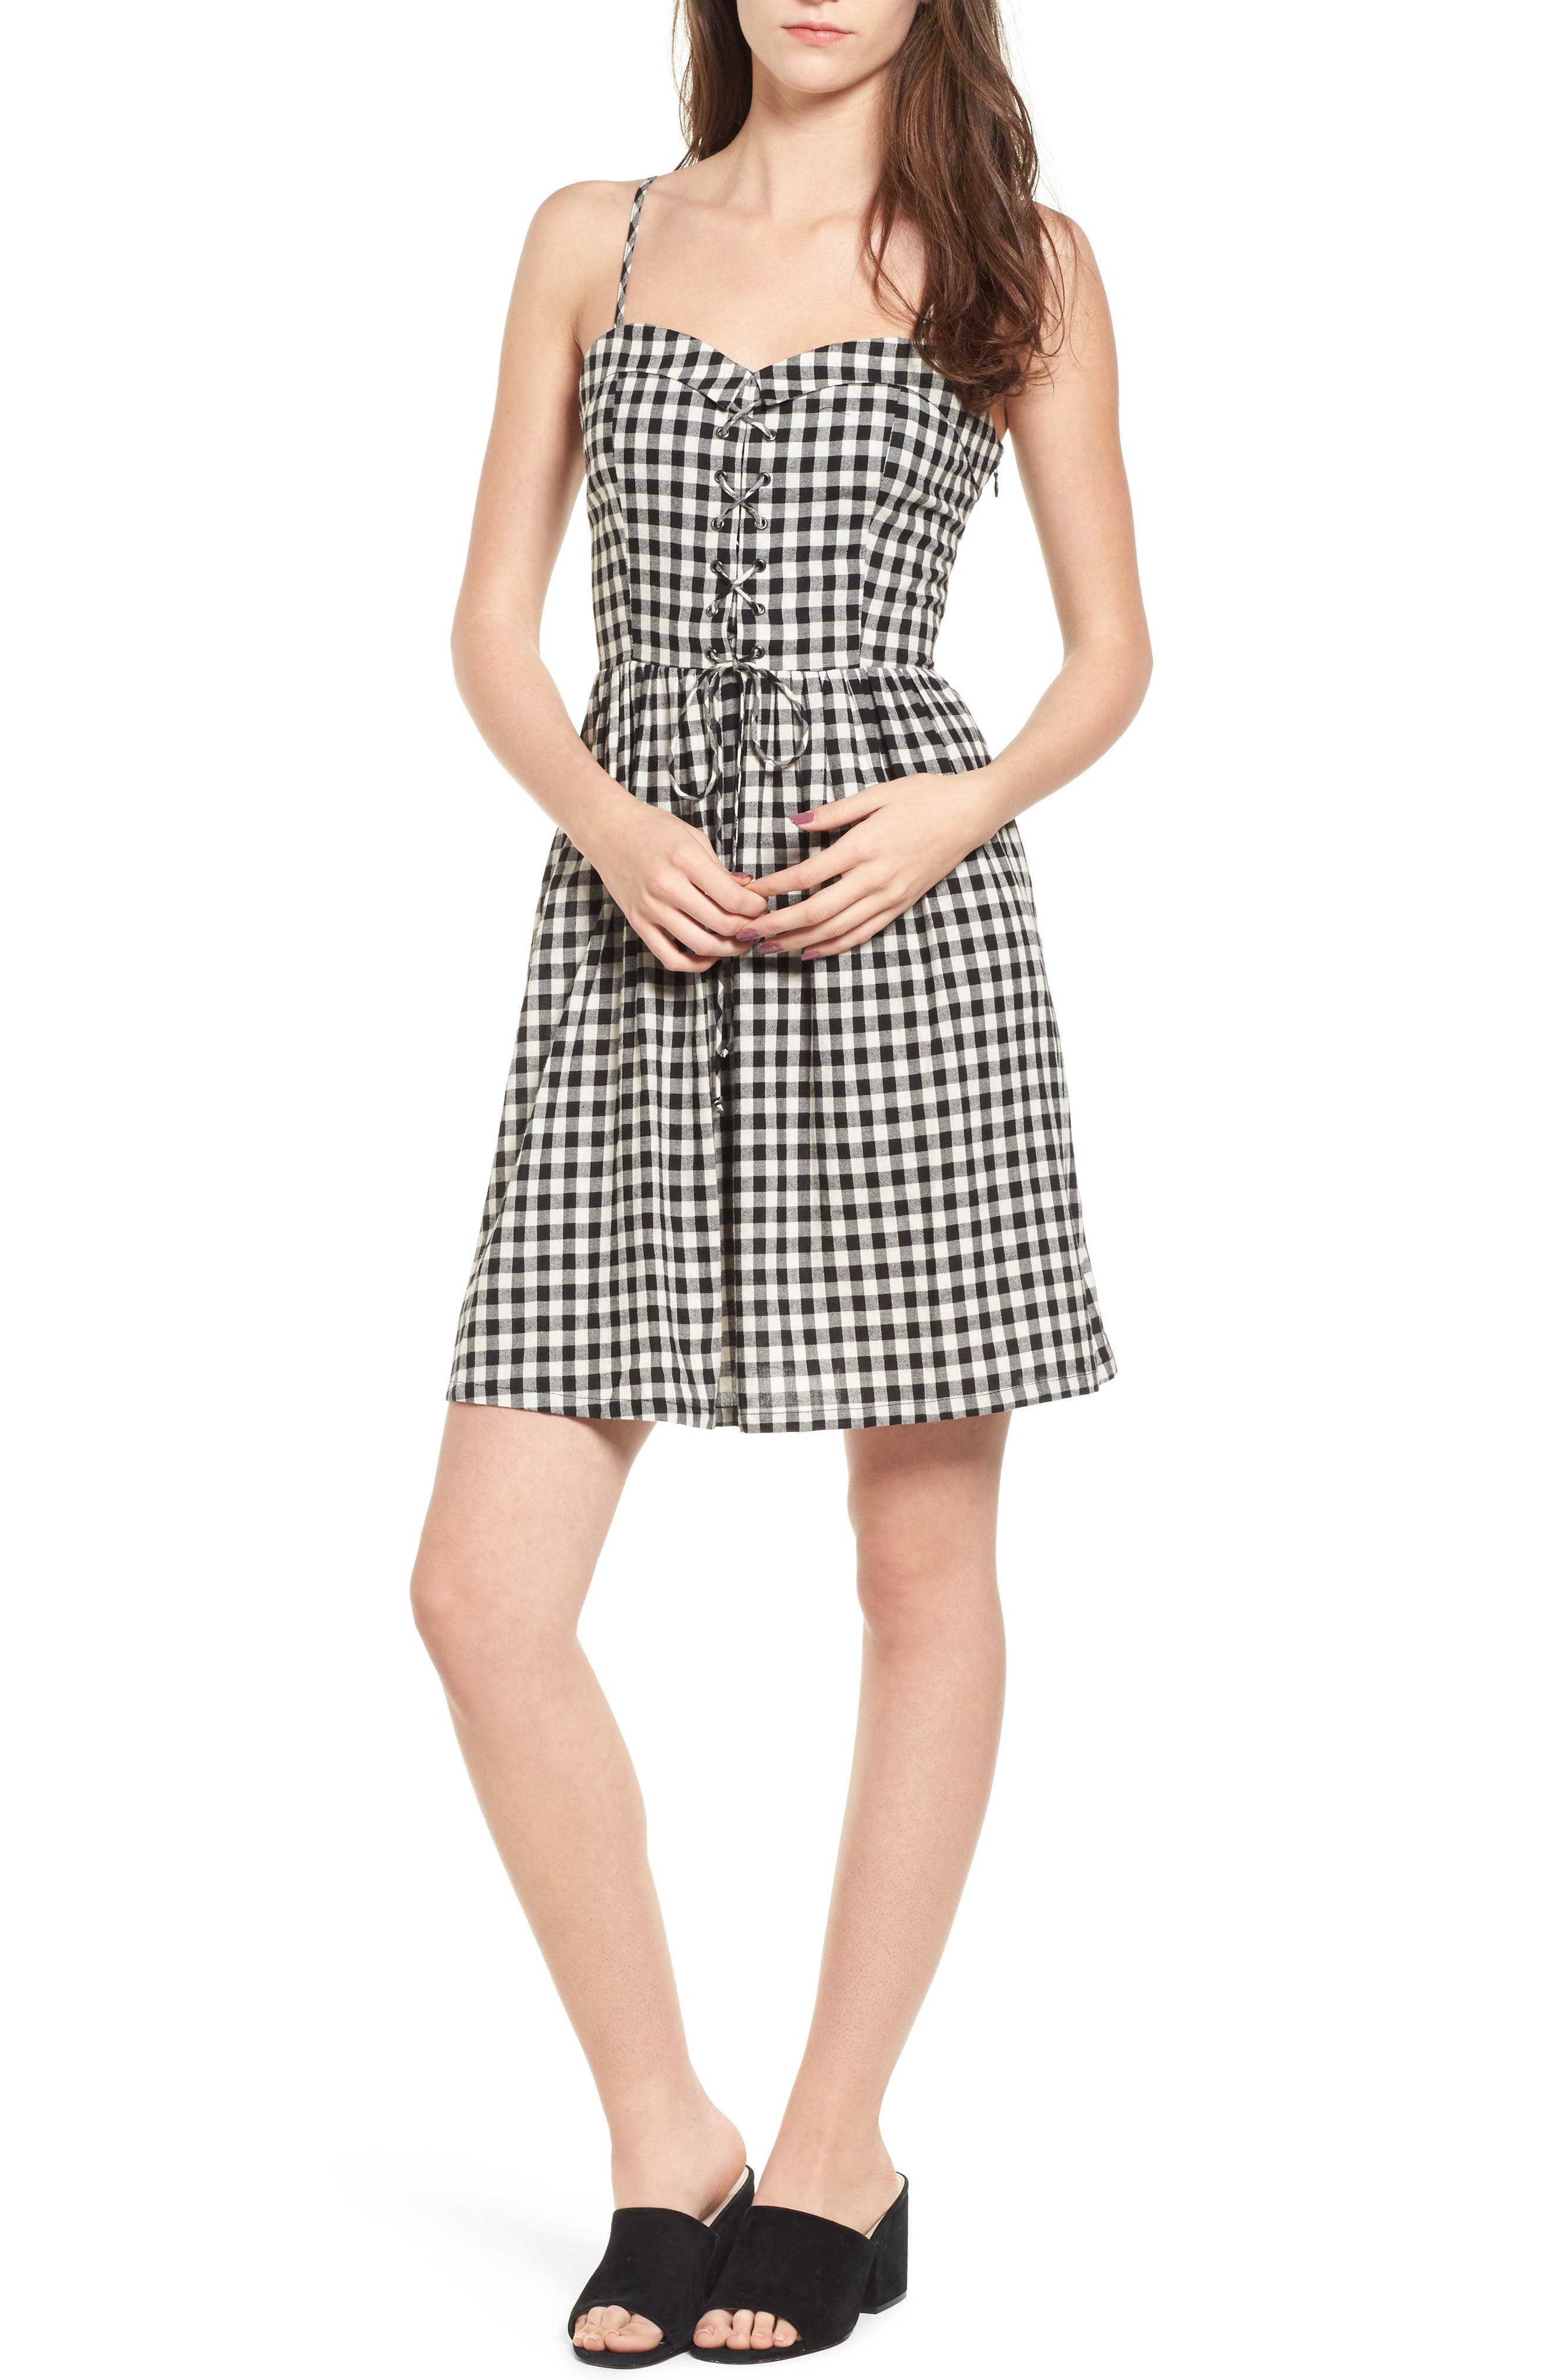 Main Image - MOON RIVER Lace-Up Gingham Dress